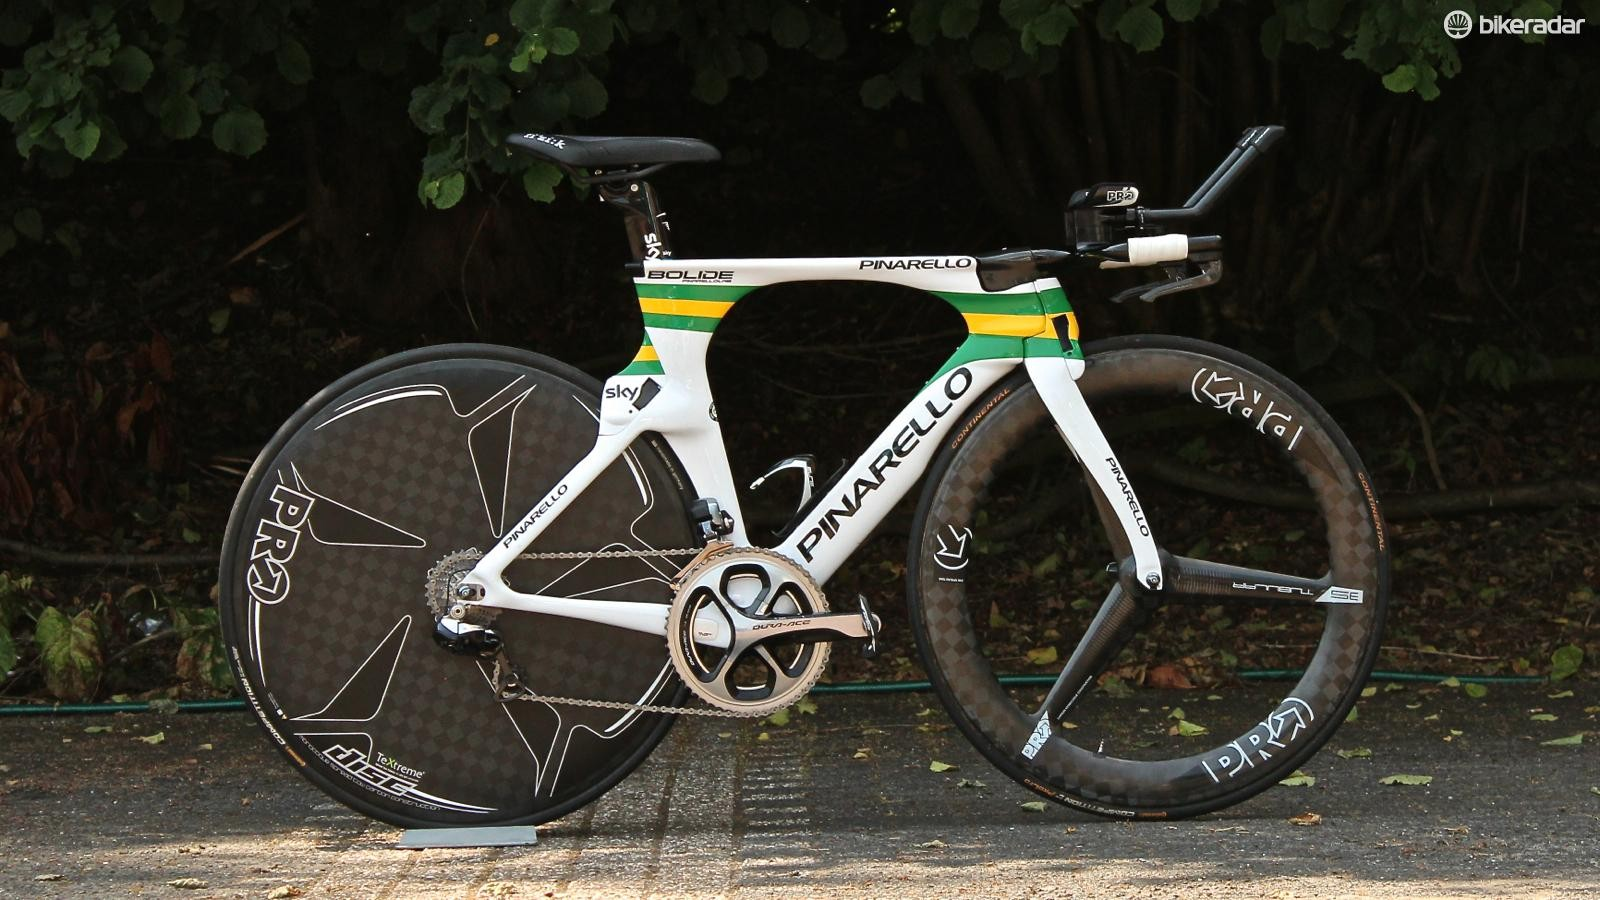 The fastest Aussie on two wheels: Richie Porte's Pinarello Bolide